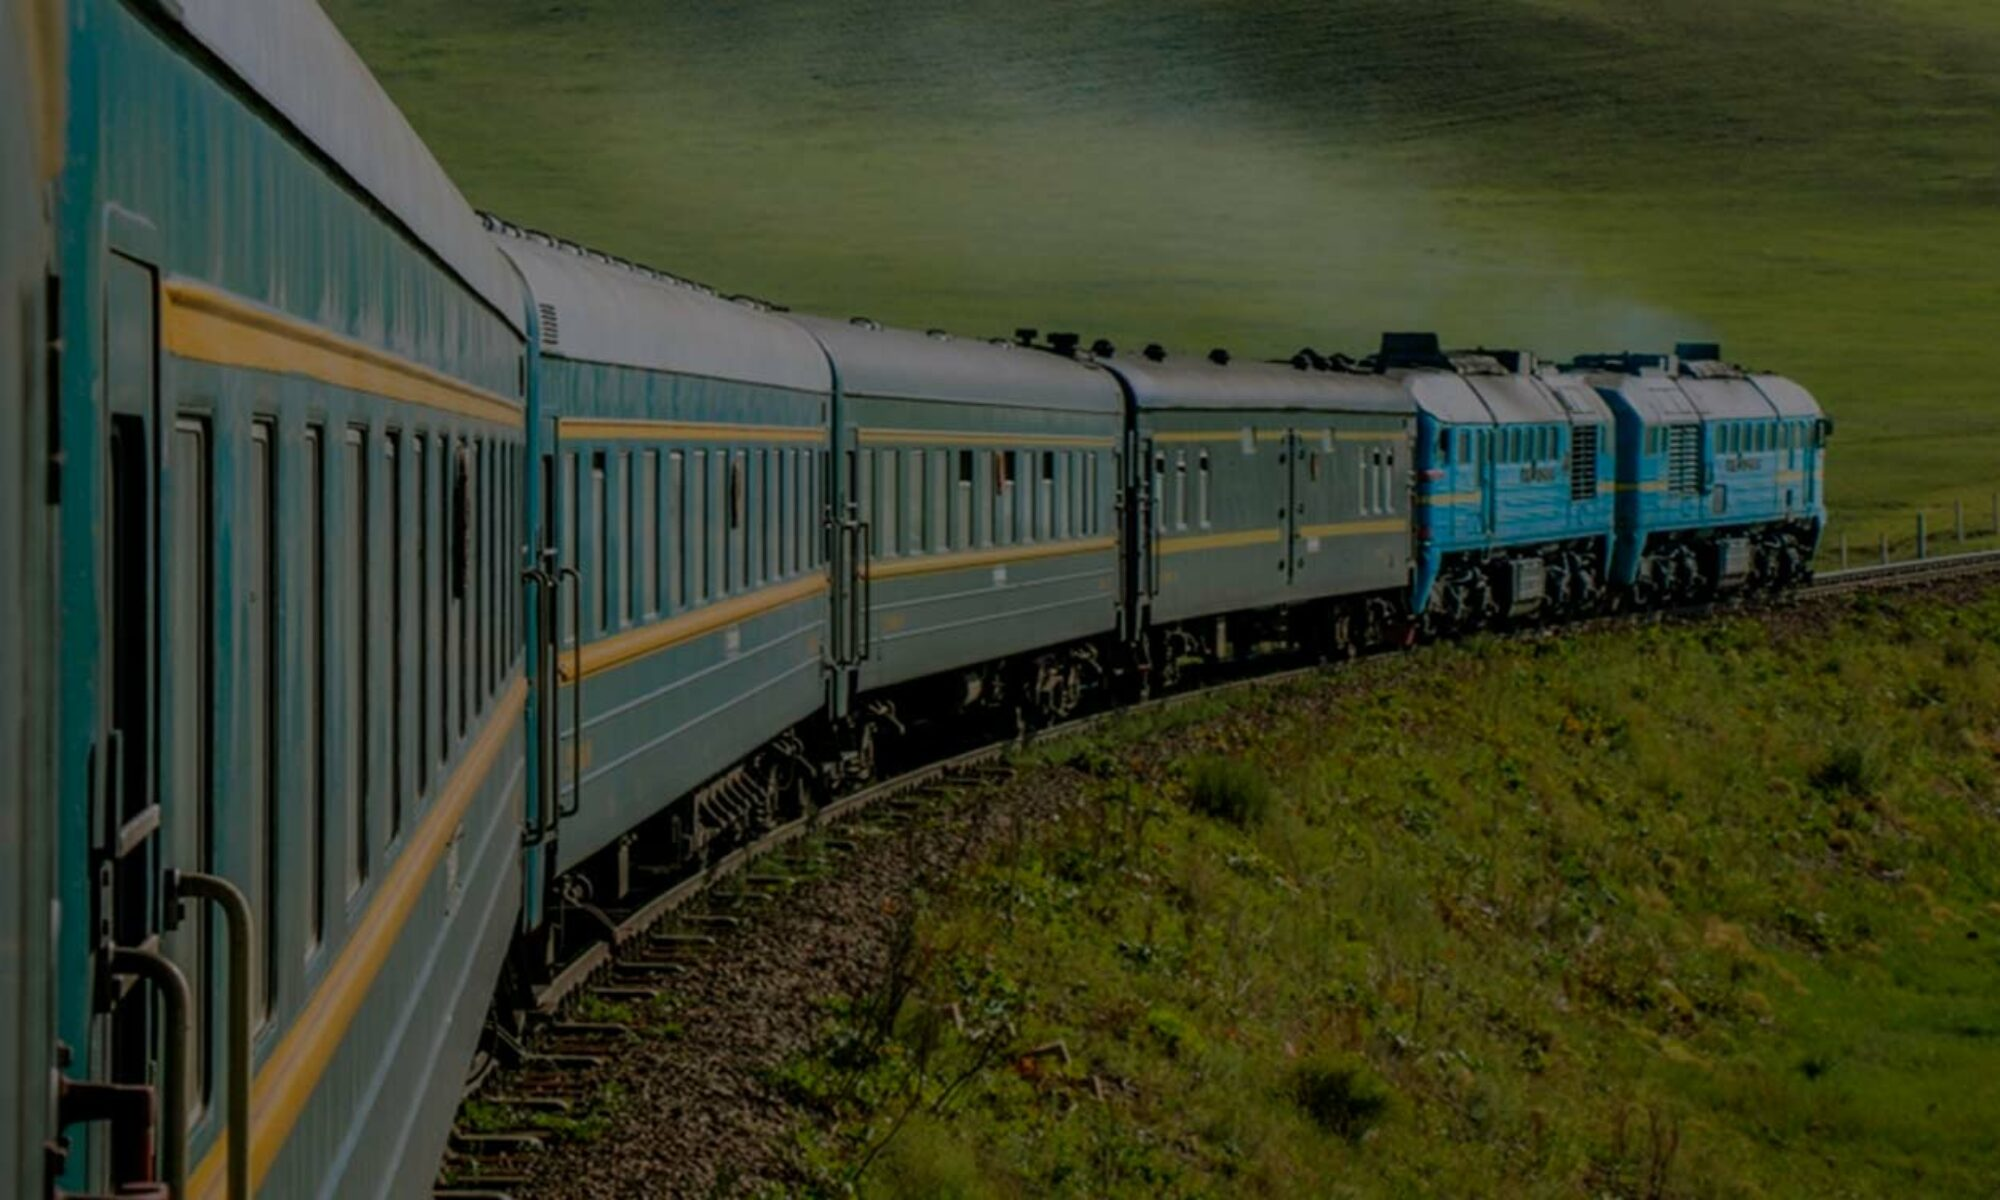 Travel on the Trans-Siberian Railway in 2021